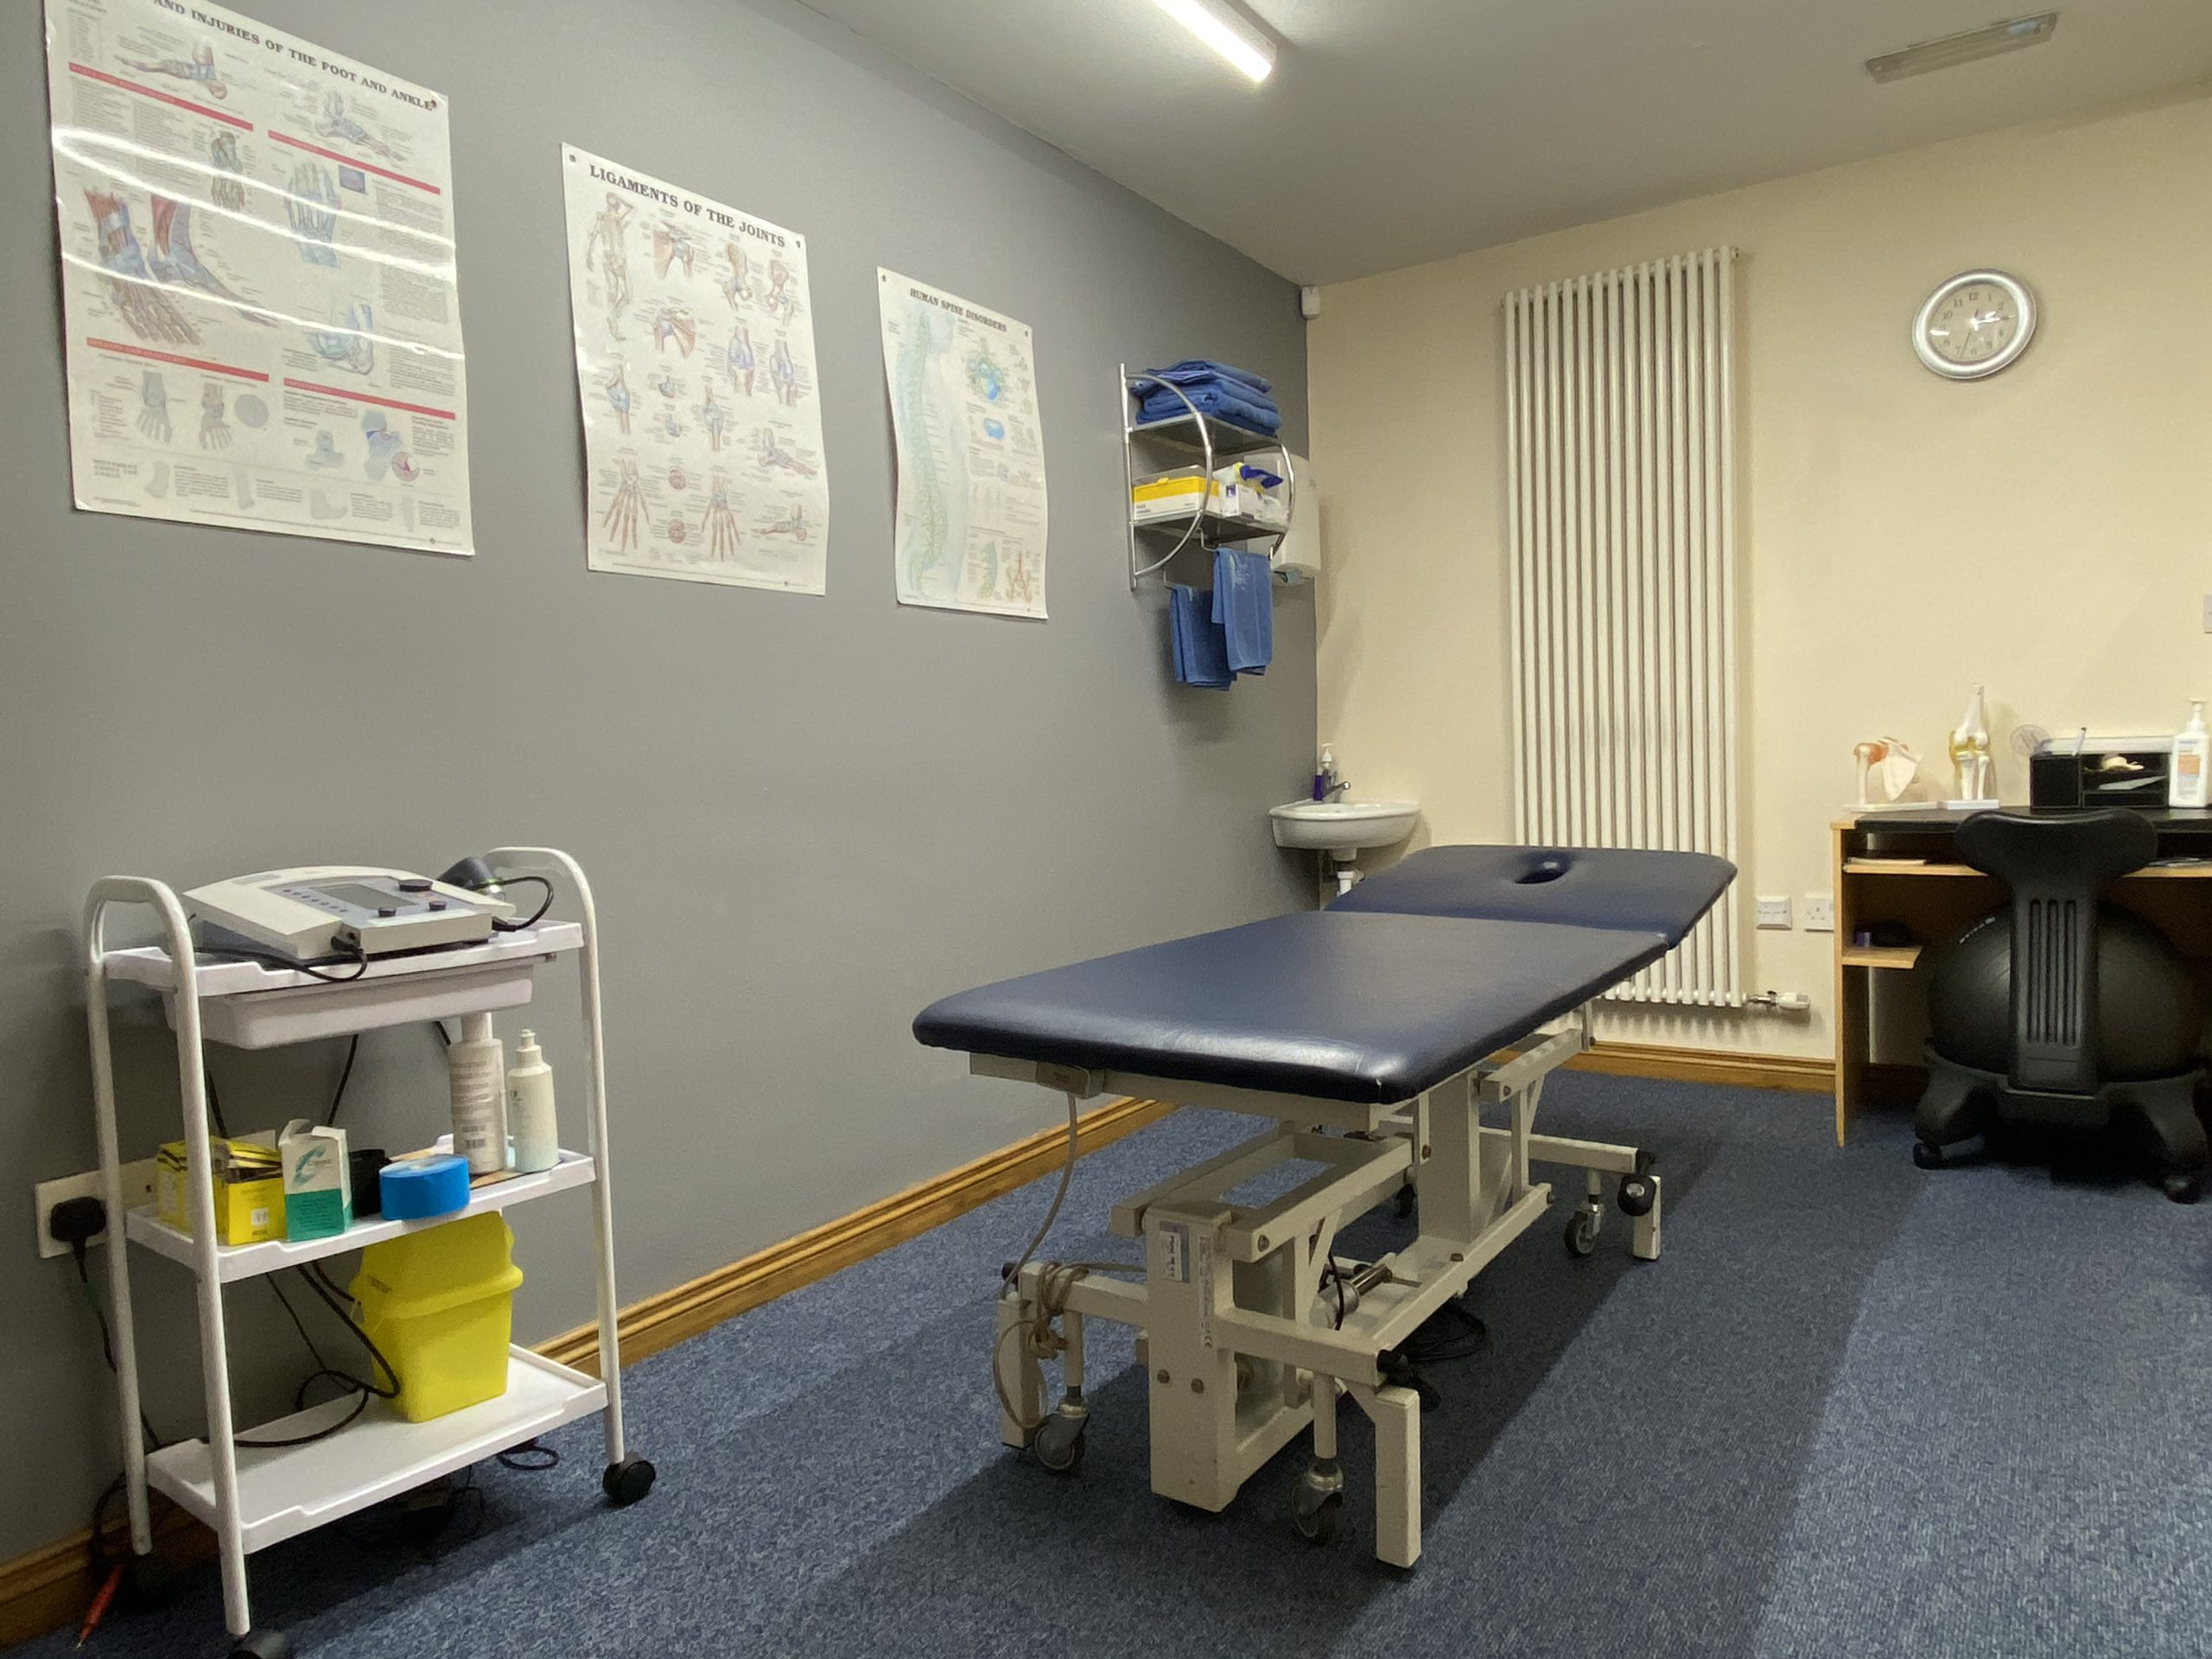 Physio treatment room with table and equipment